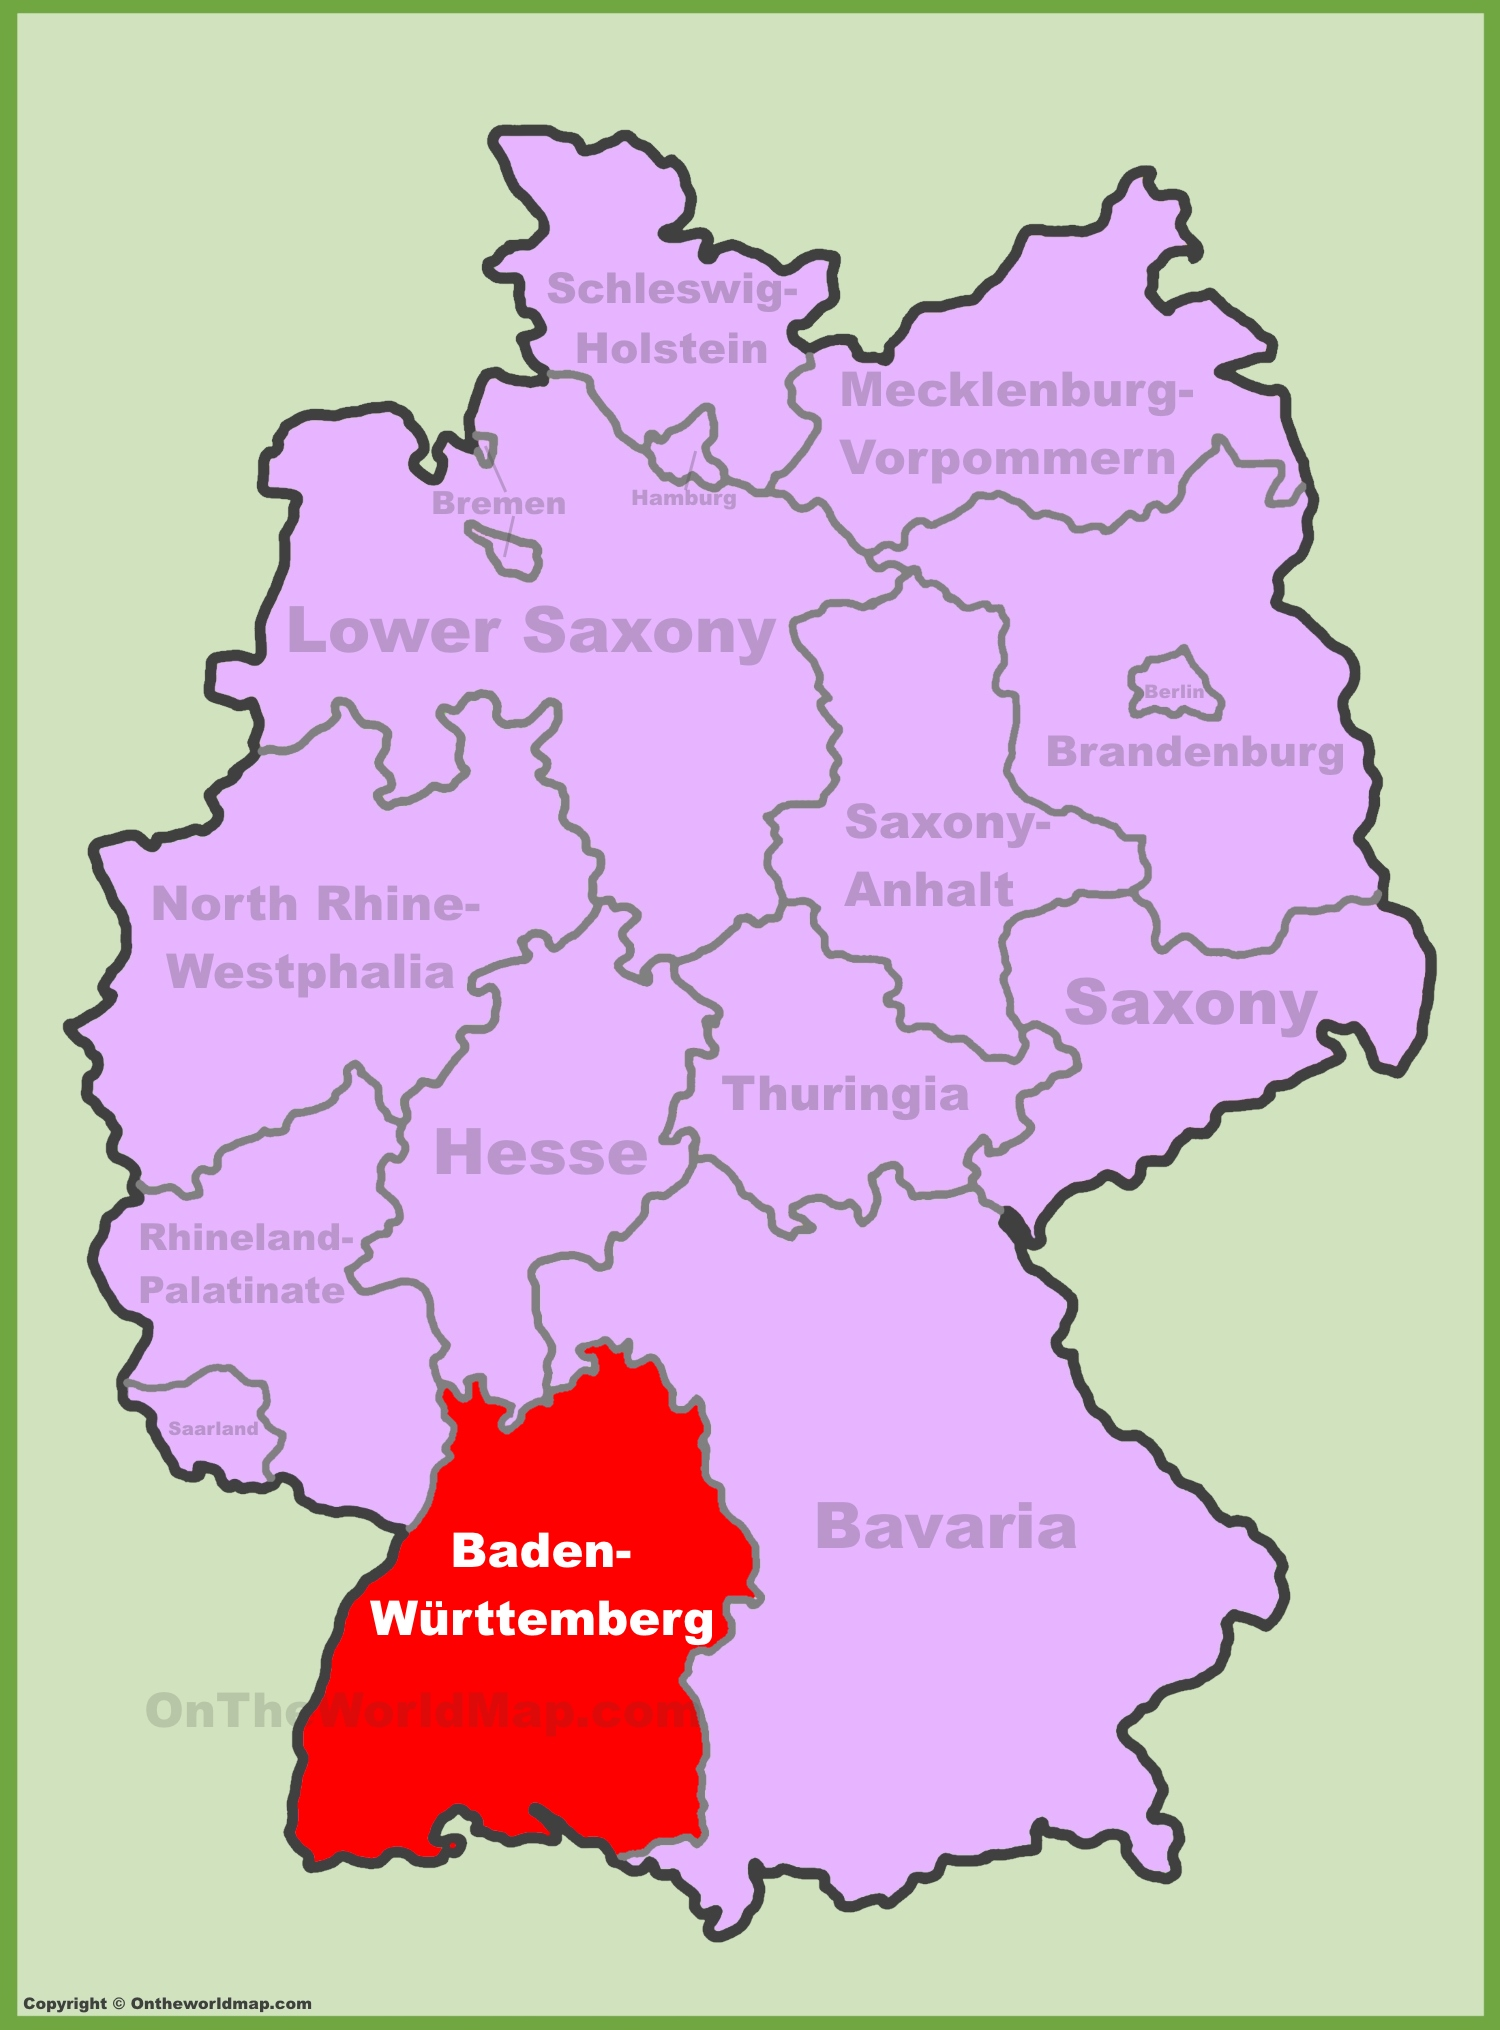 Baden wrttemberg location on the germany map baden wrttemberg location on the germany map gumiabroncs Choice Image